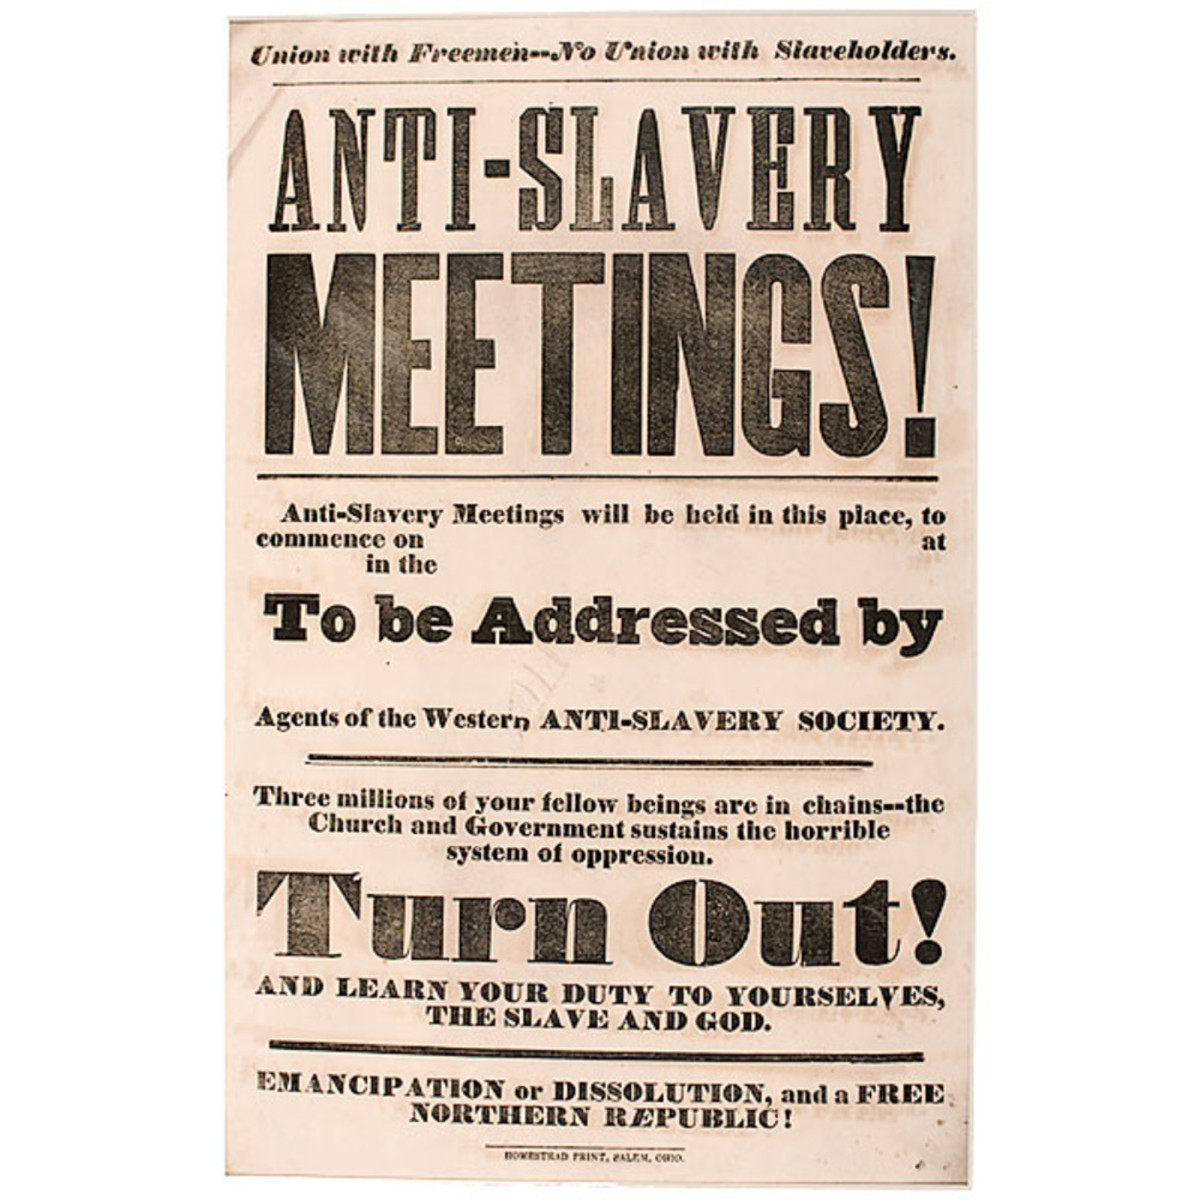 A poster that advertises anti-Slavery meetings